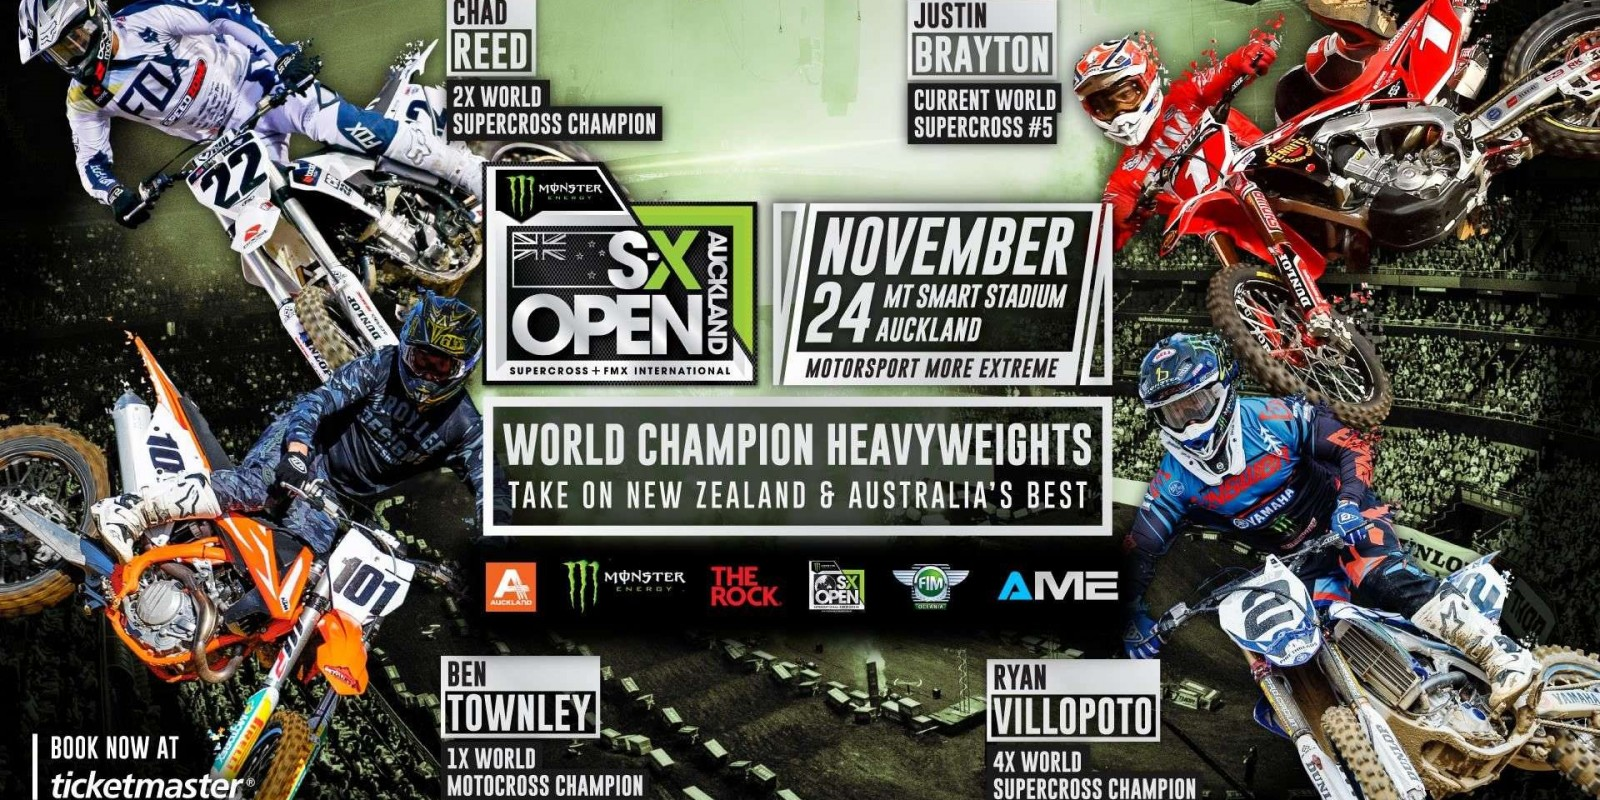 FB Event Cover photos for SX Open Auckland and AUS-X Open Sydney